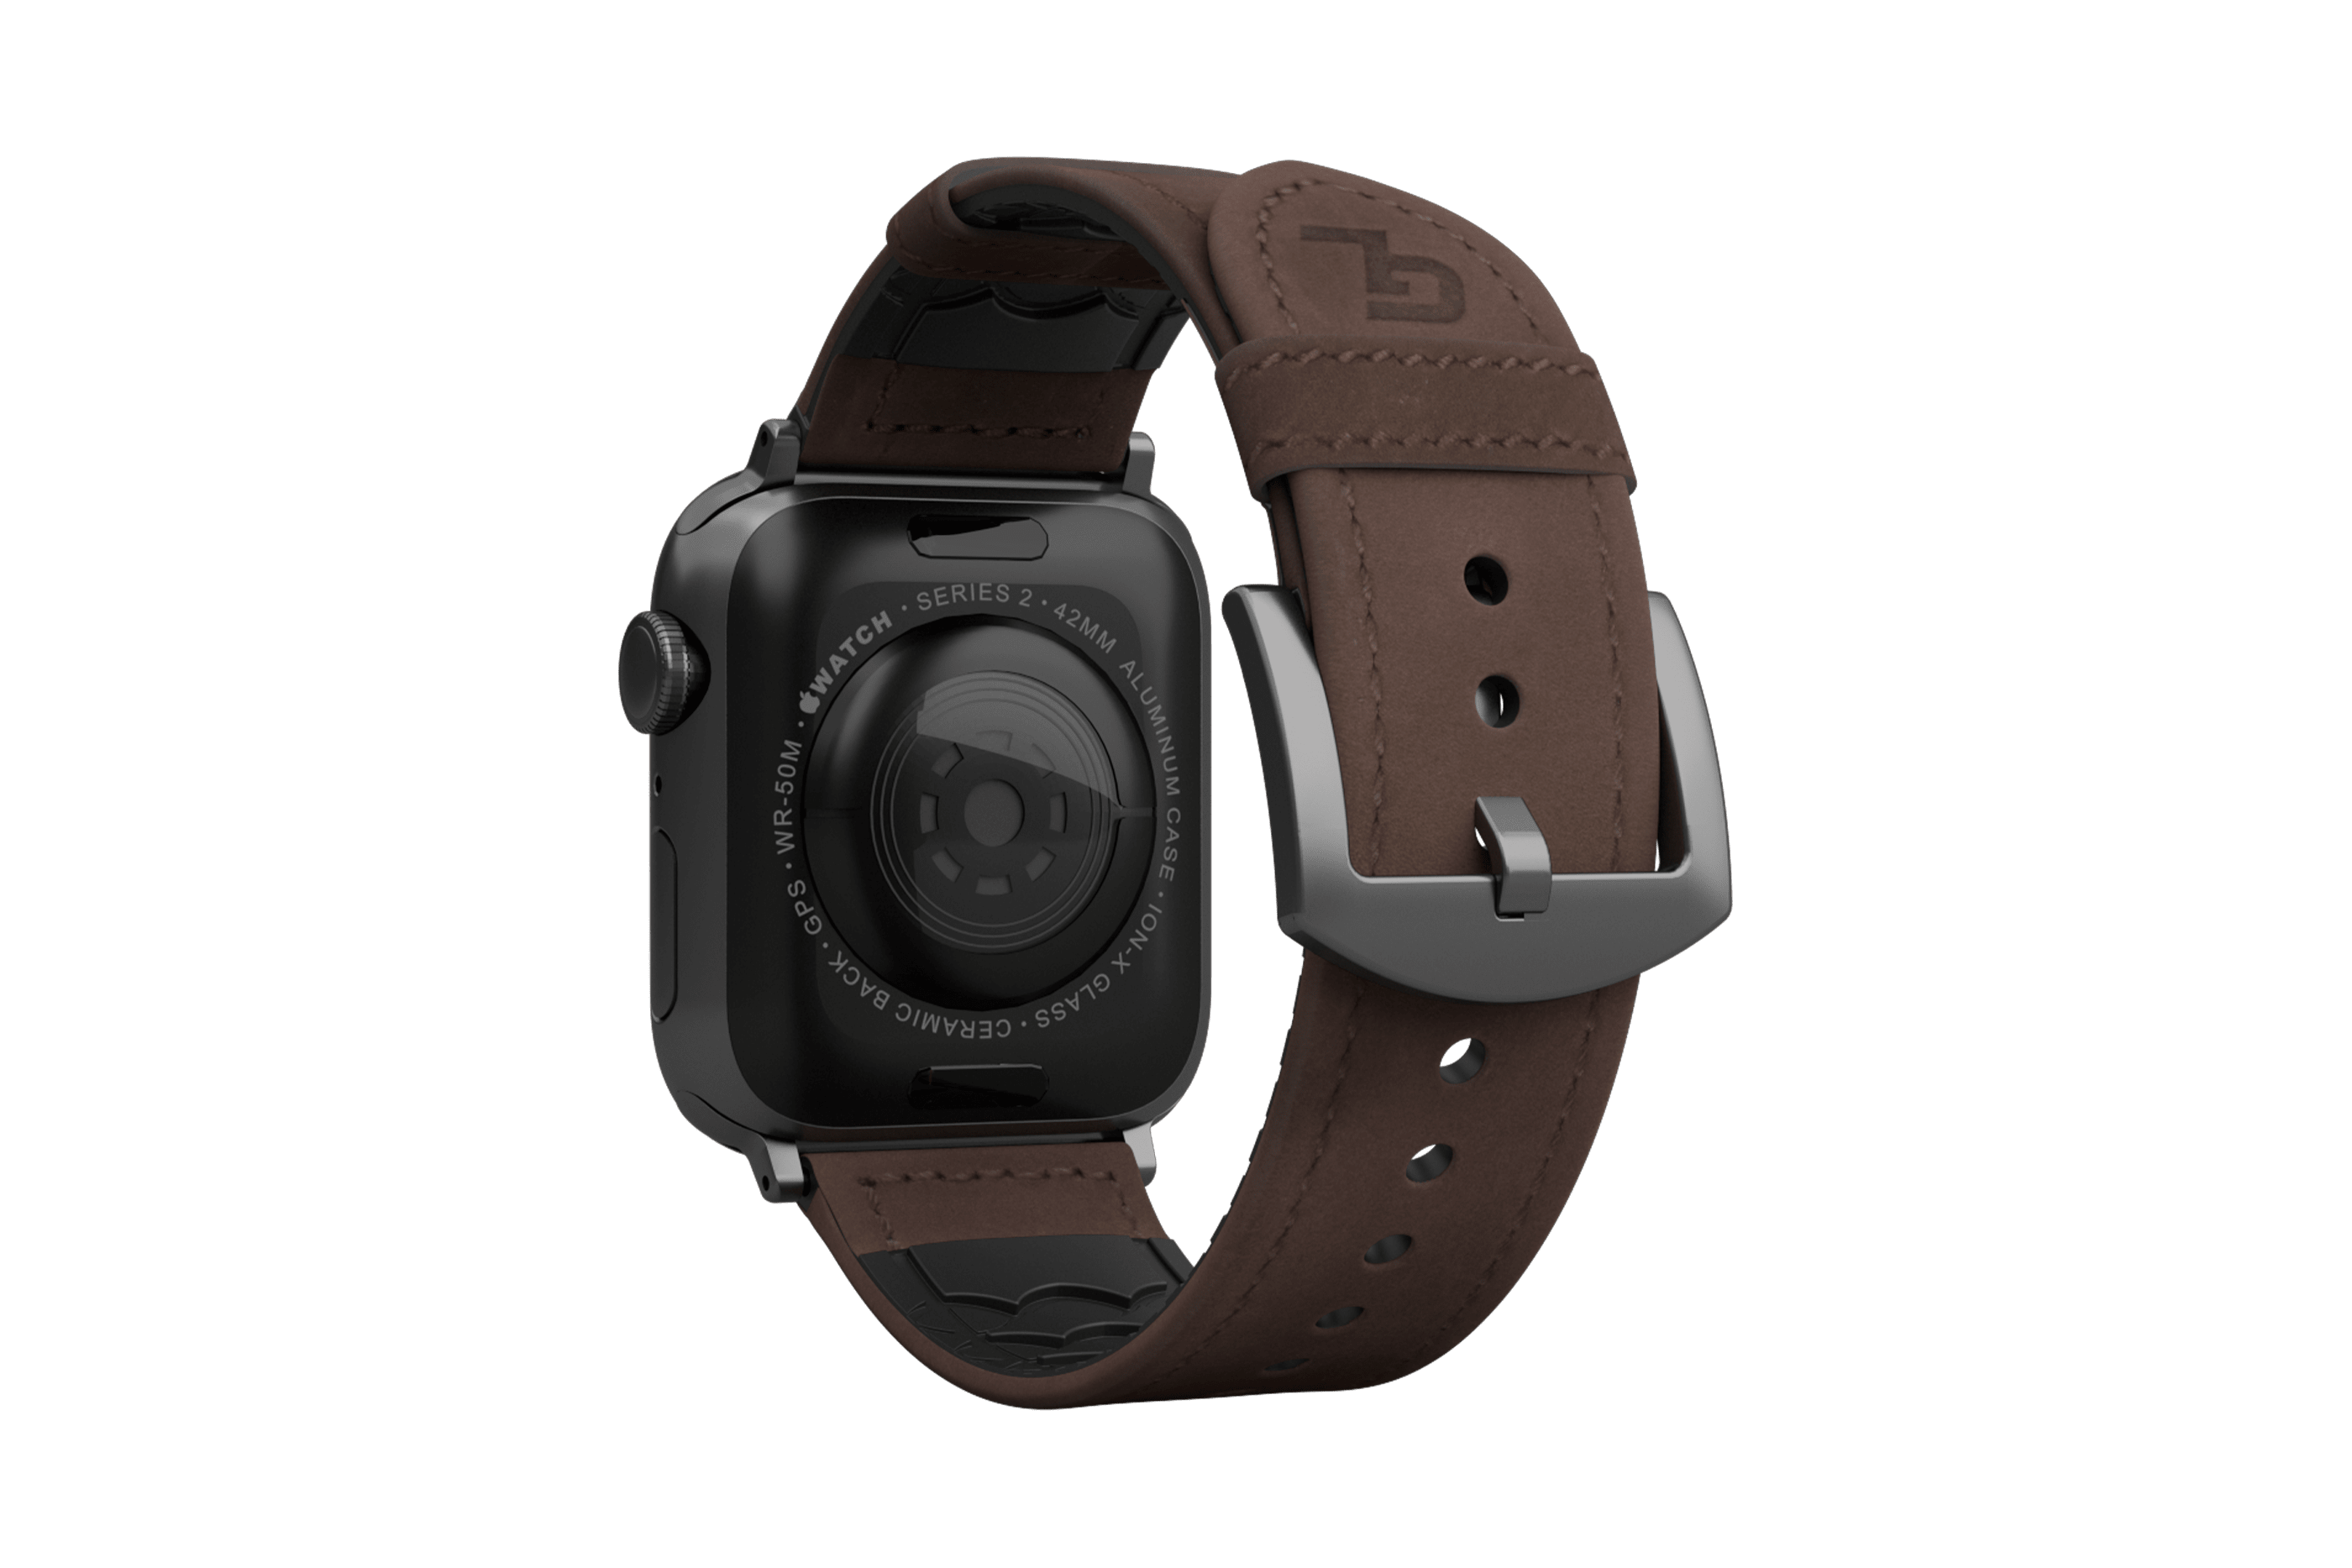 Vulcan Ascent Leather apple watch band with gray hardware viewed from top down